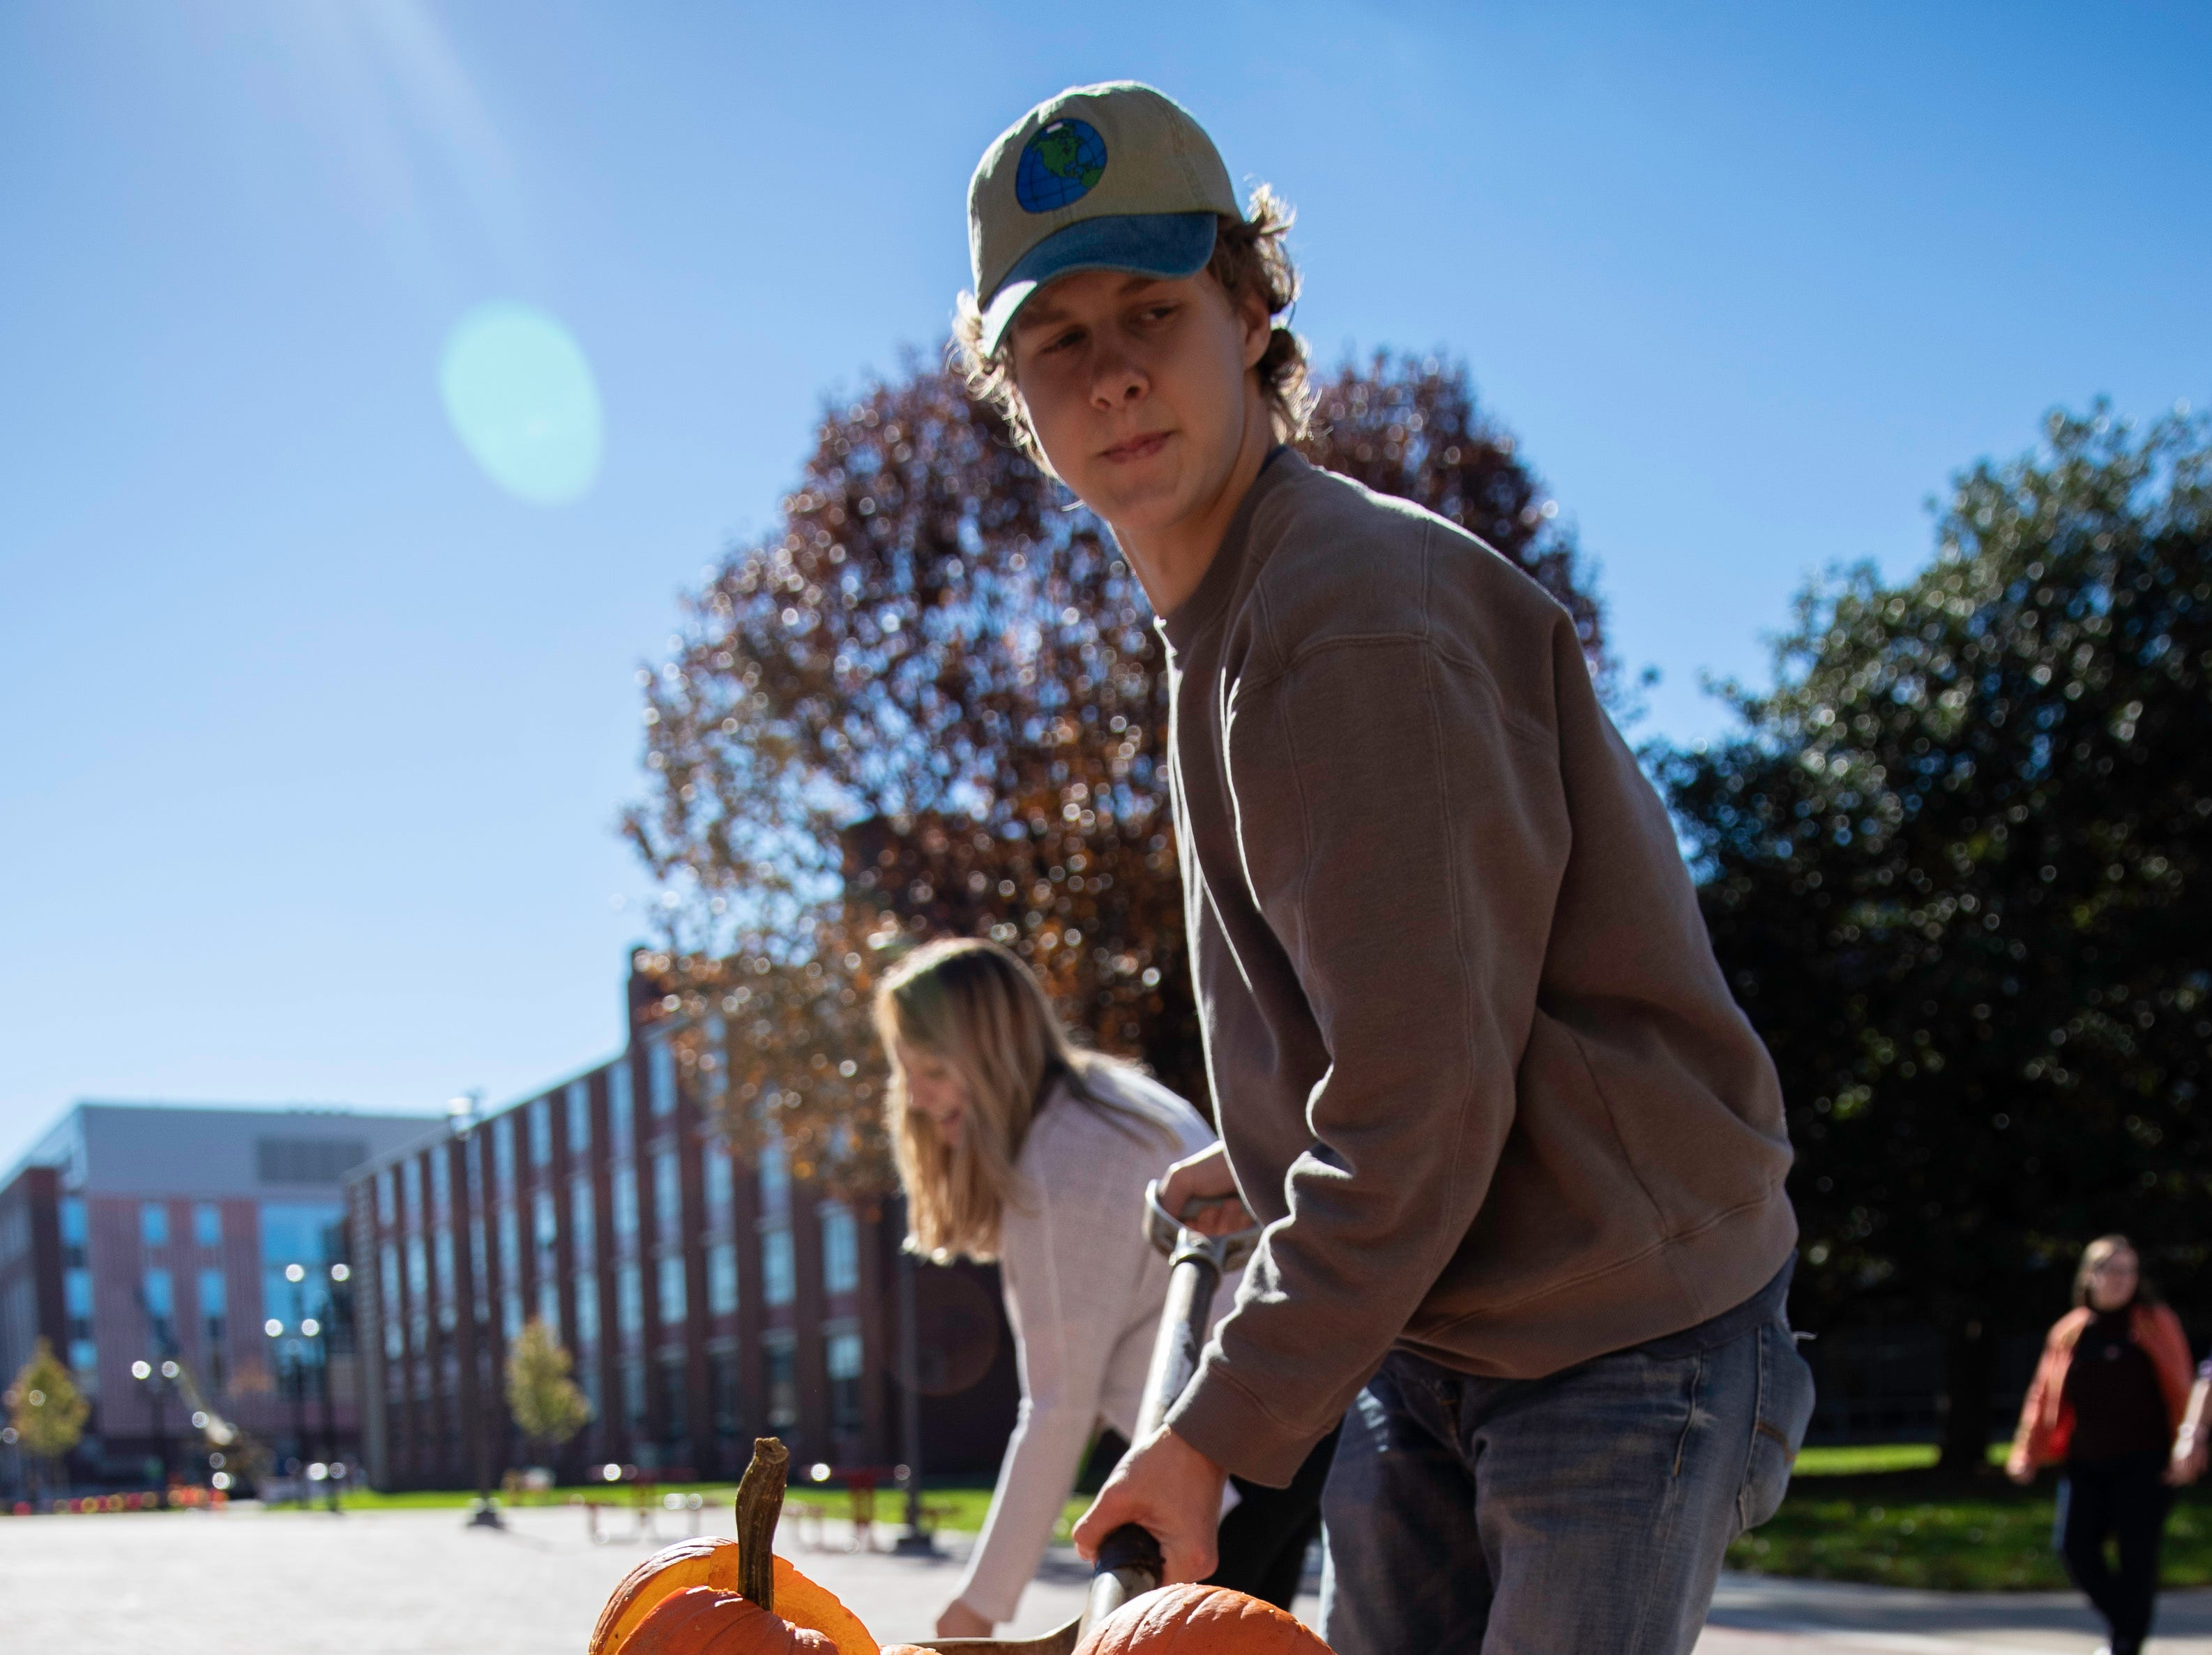 Josh Cagle, sophomore sustainability major, cleans up smashed pumpkins after the annual Pumpkin Smash event, Tuesday, Nov. 6, 2018 in Louisville Ky. The annual Pumpkin Smash in collaboration with the Office of Health Promotion, benefits UofL's Community Composting Project with all smashed pumpkins going into the compost to feed various community gardens, on and off UofL's campus.